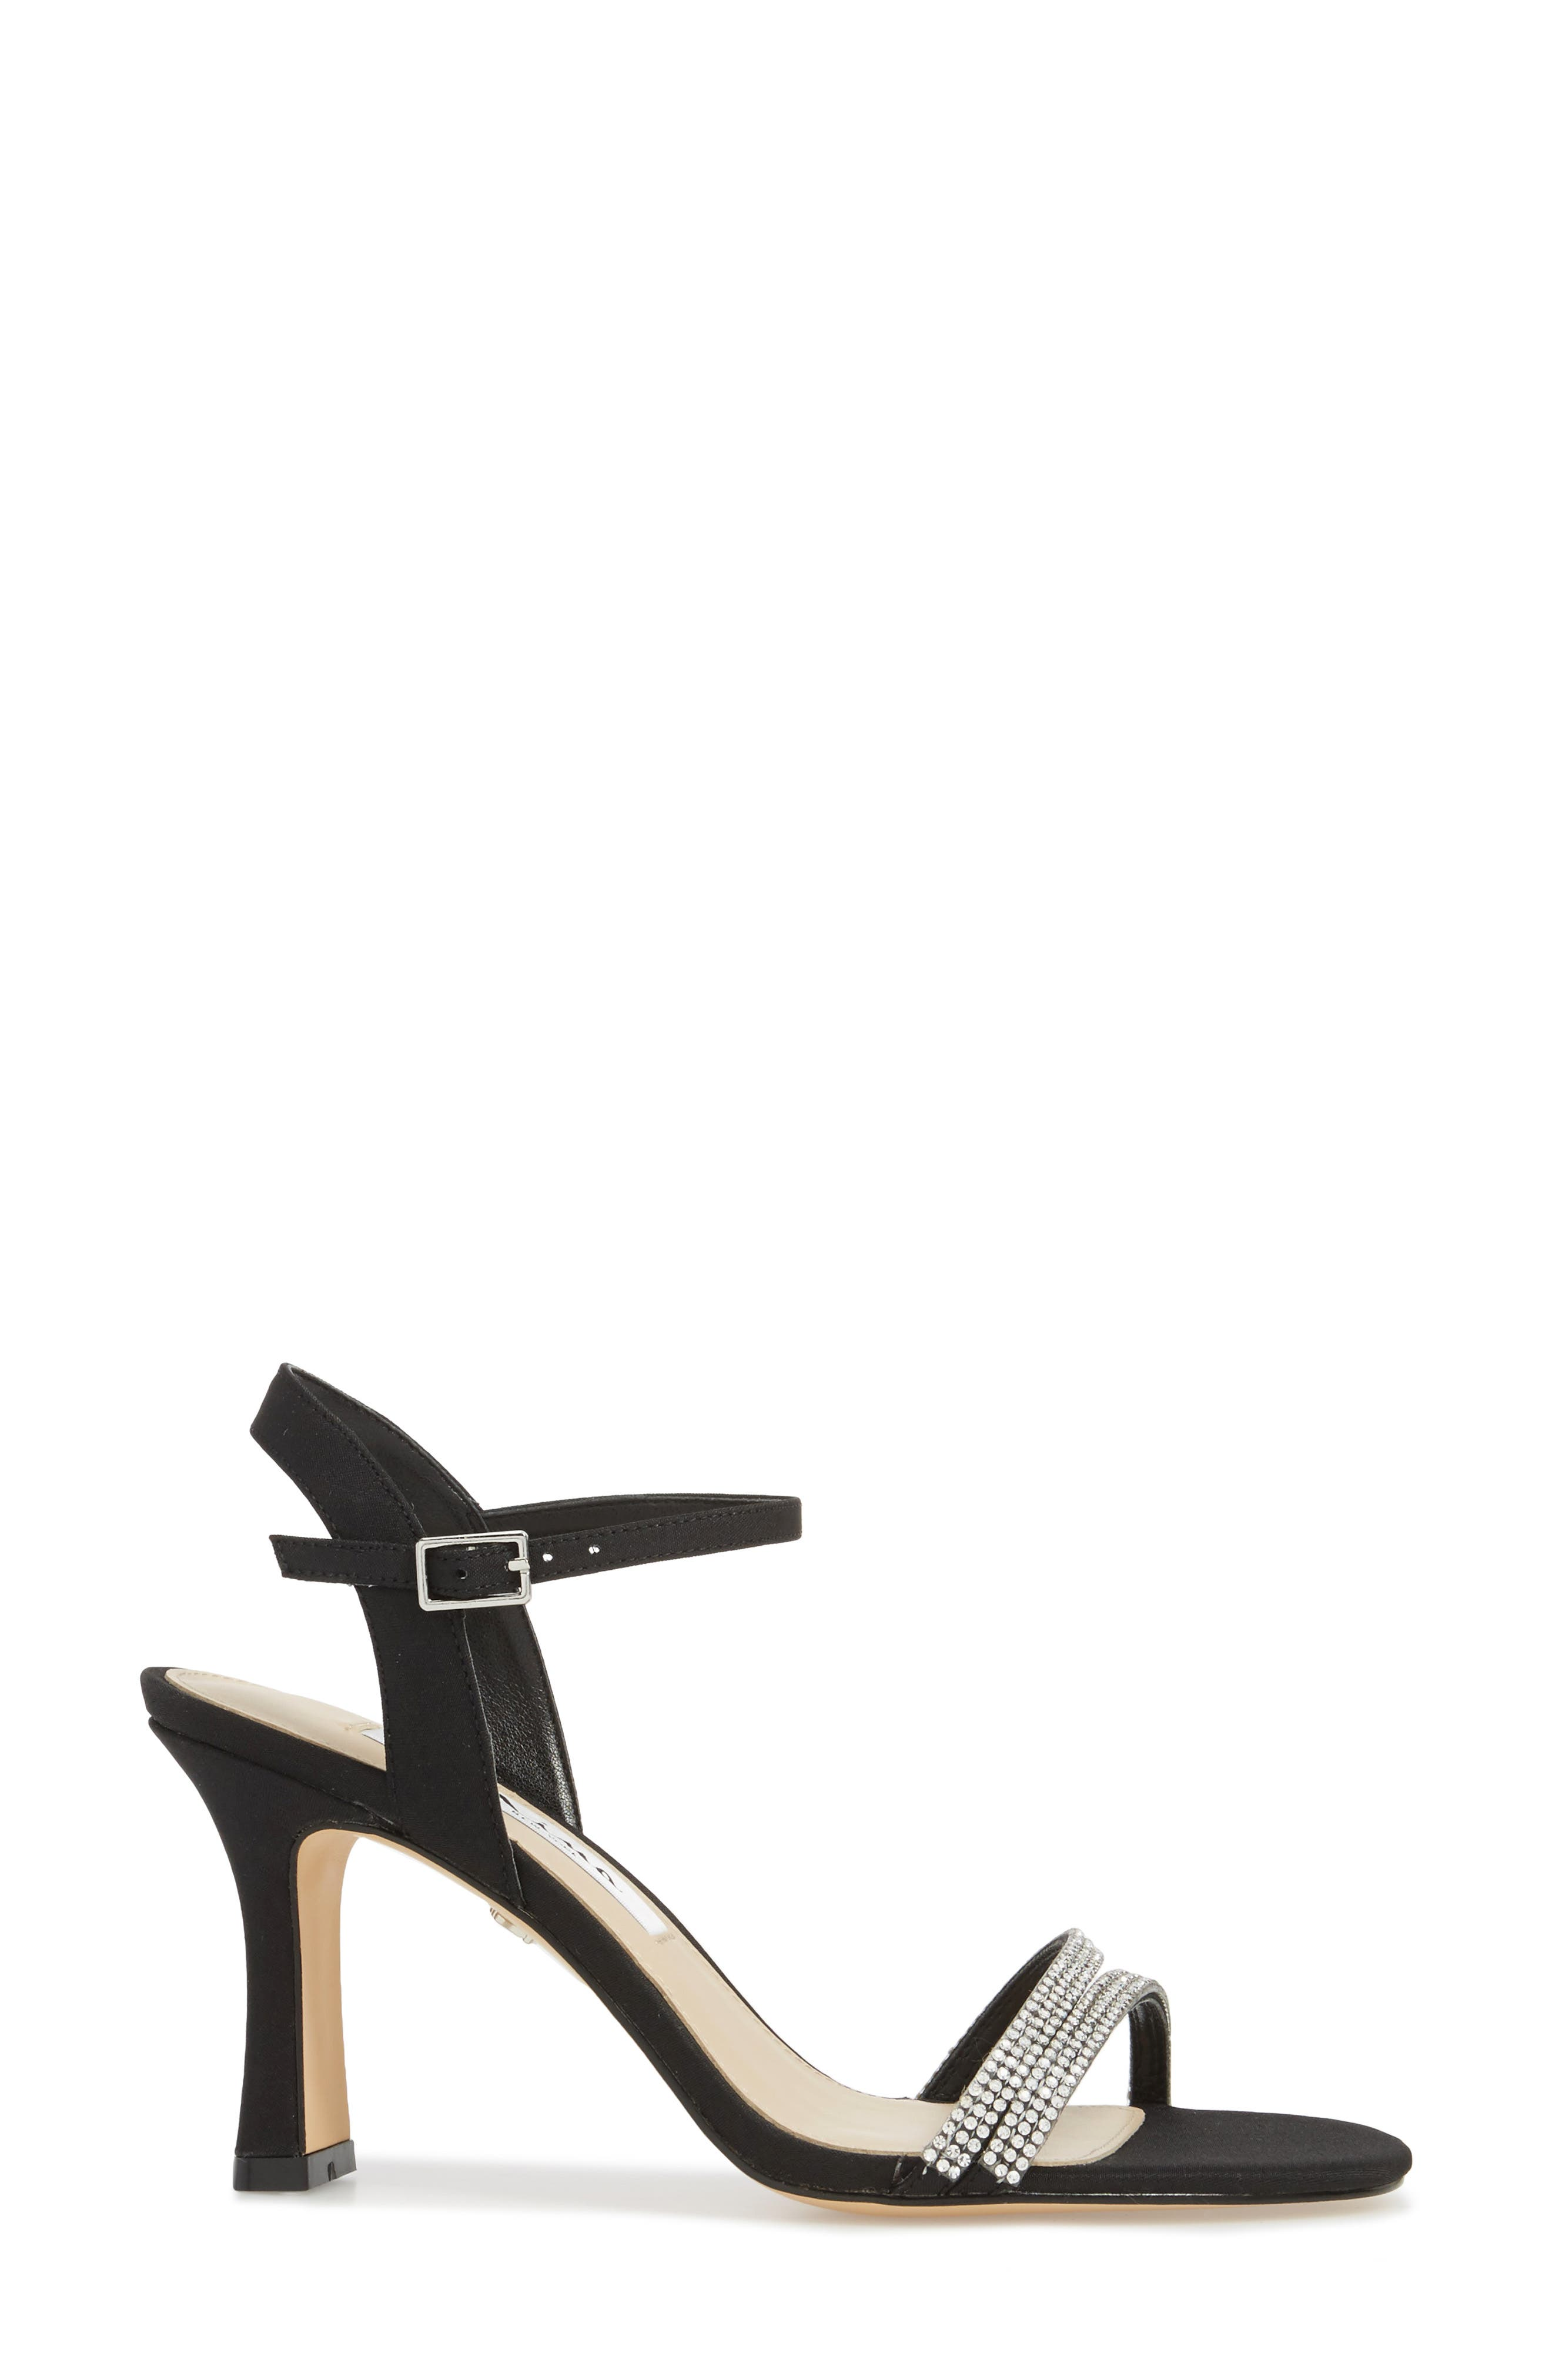 Avalon Ankle Strap Sandal,                             Alternate thumbnail 7, color,